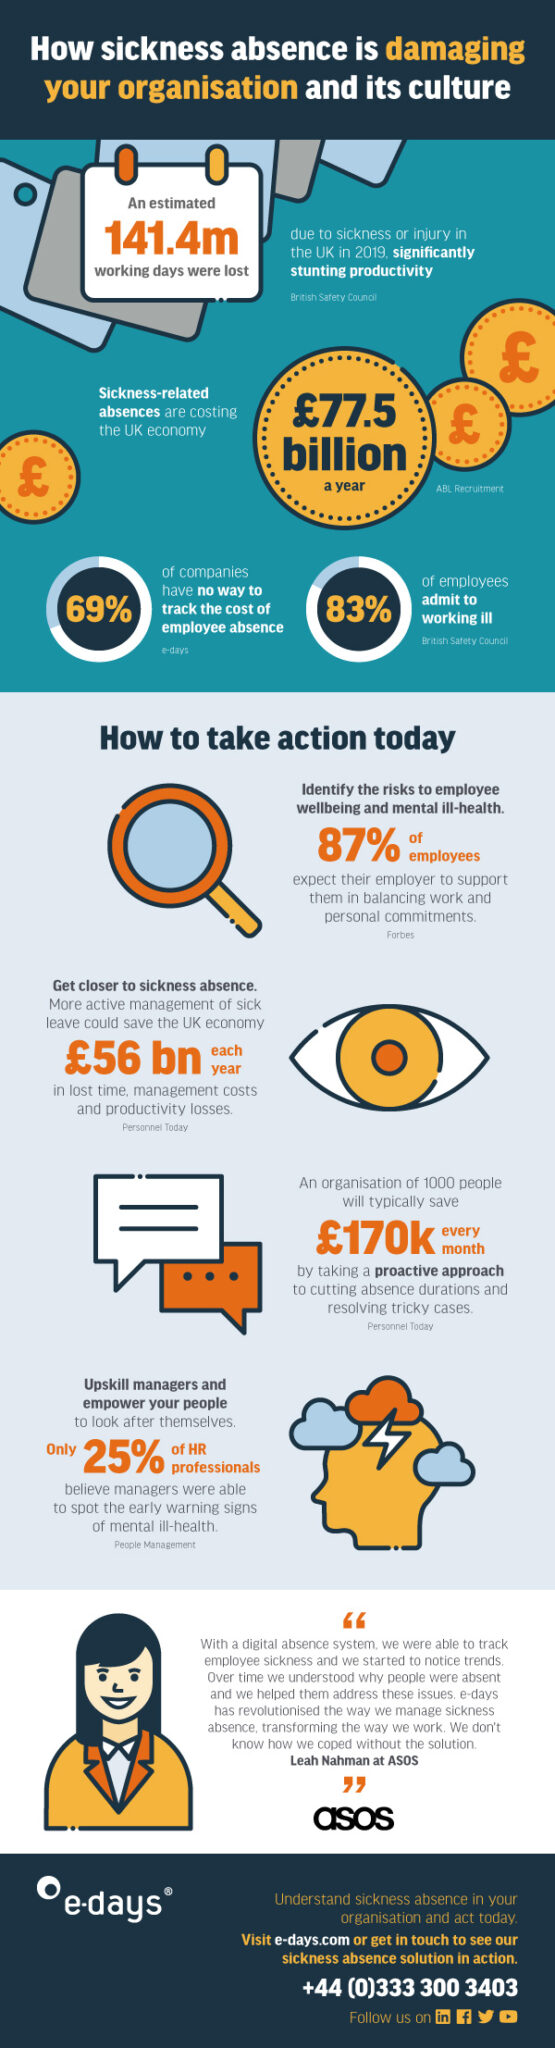 how sickness absence is damaging your organisation and its culture infographic